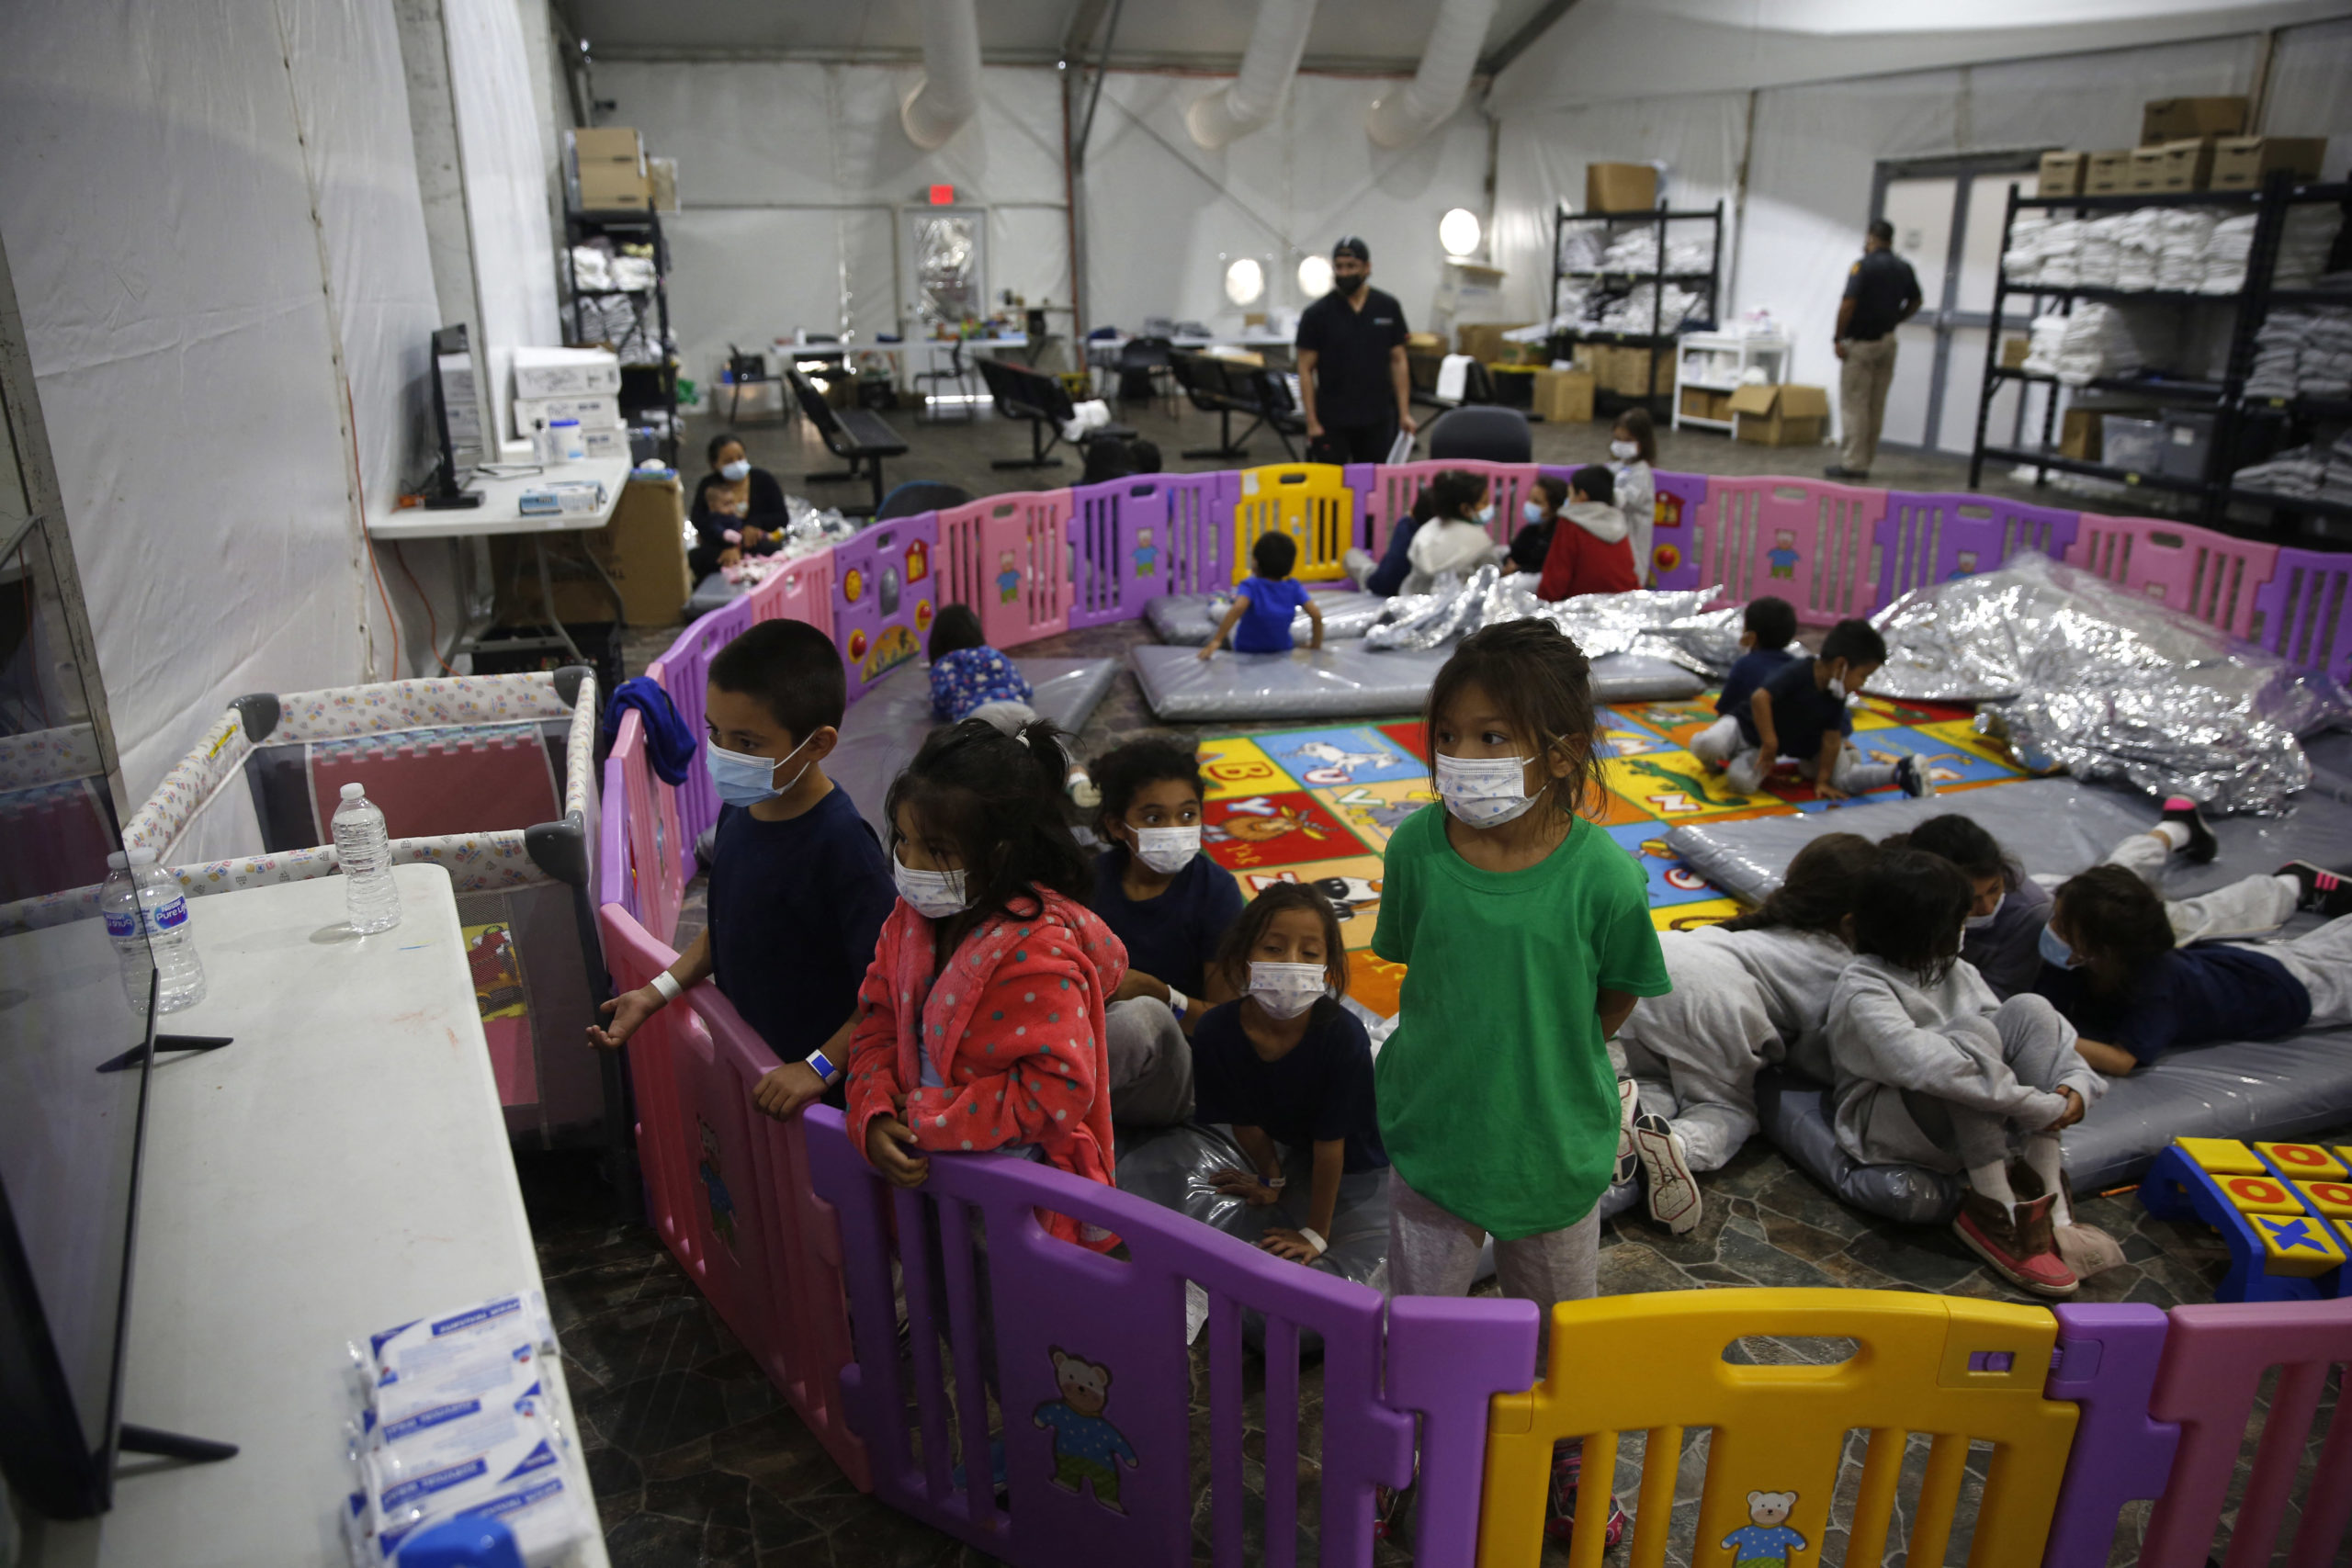 Unaccompanied migrants, ages 3-9 watch TV inside a playpen at the Donna Department of Homeland Security holding facility, the main detention center for unaccompanied children in the Rio Grande Valley (Photo by DARIO LOPEZ-MILLS/POOL/AFP via Getty Images)